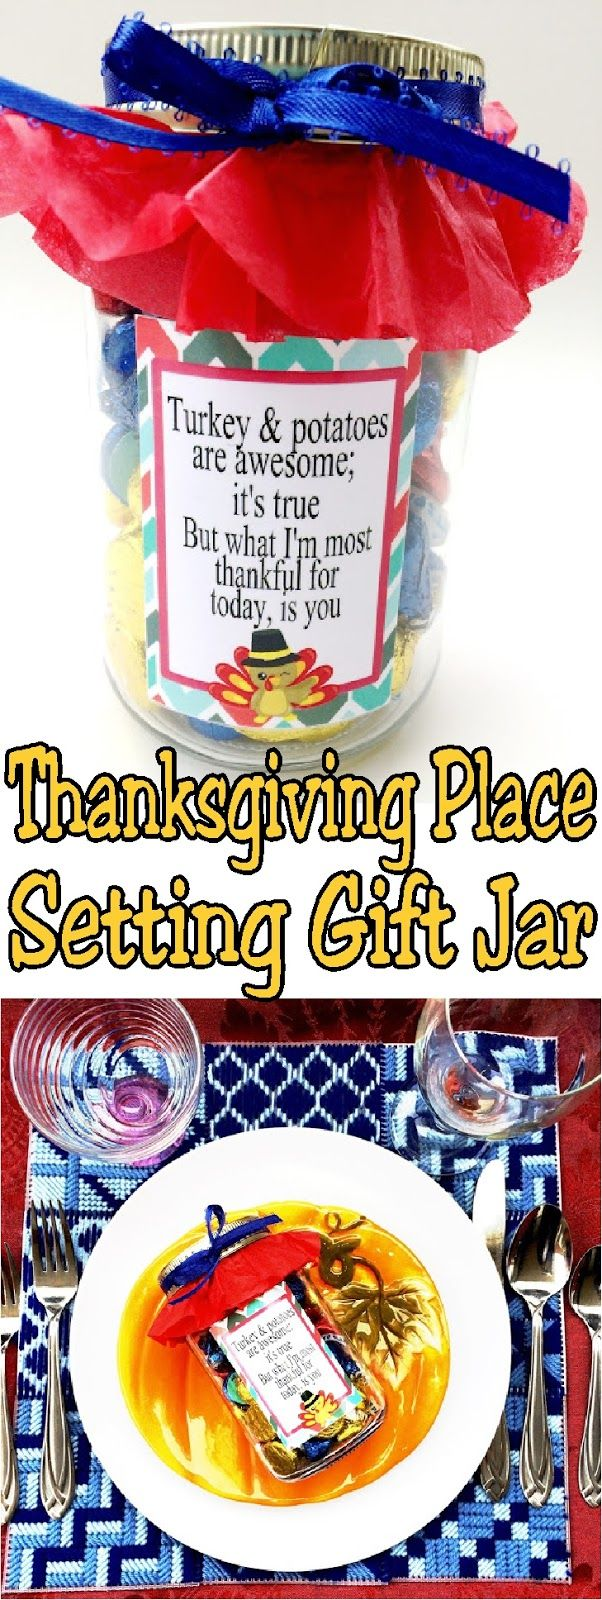 Wow your guests and tell them how much you are thankful for them